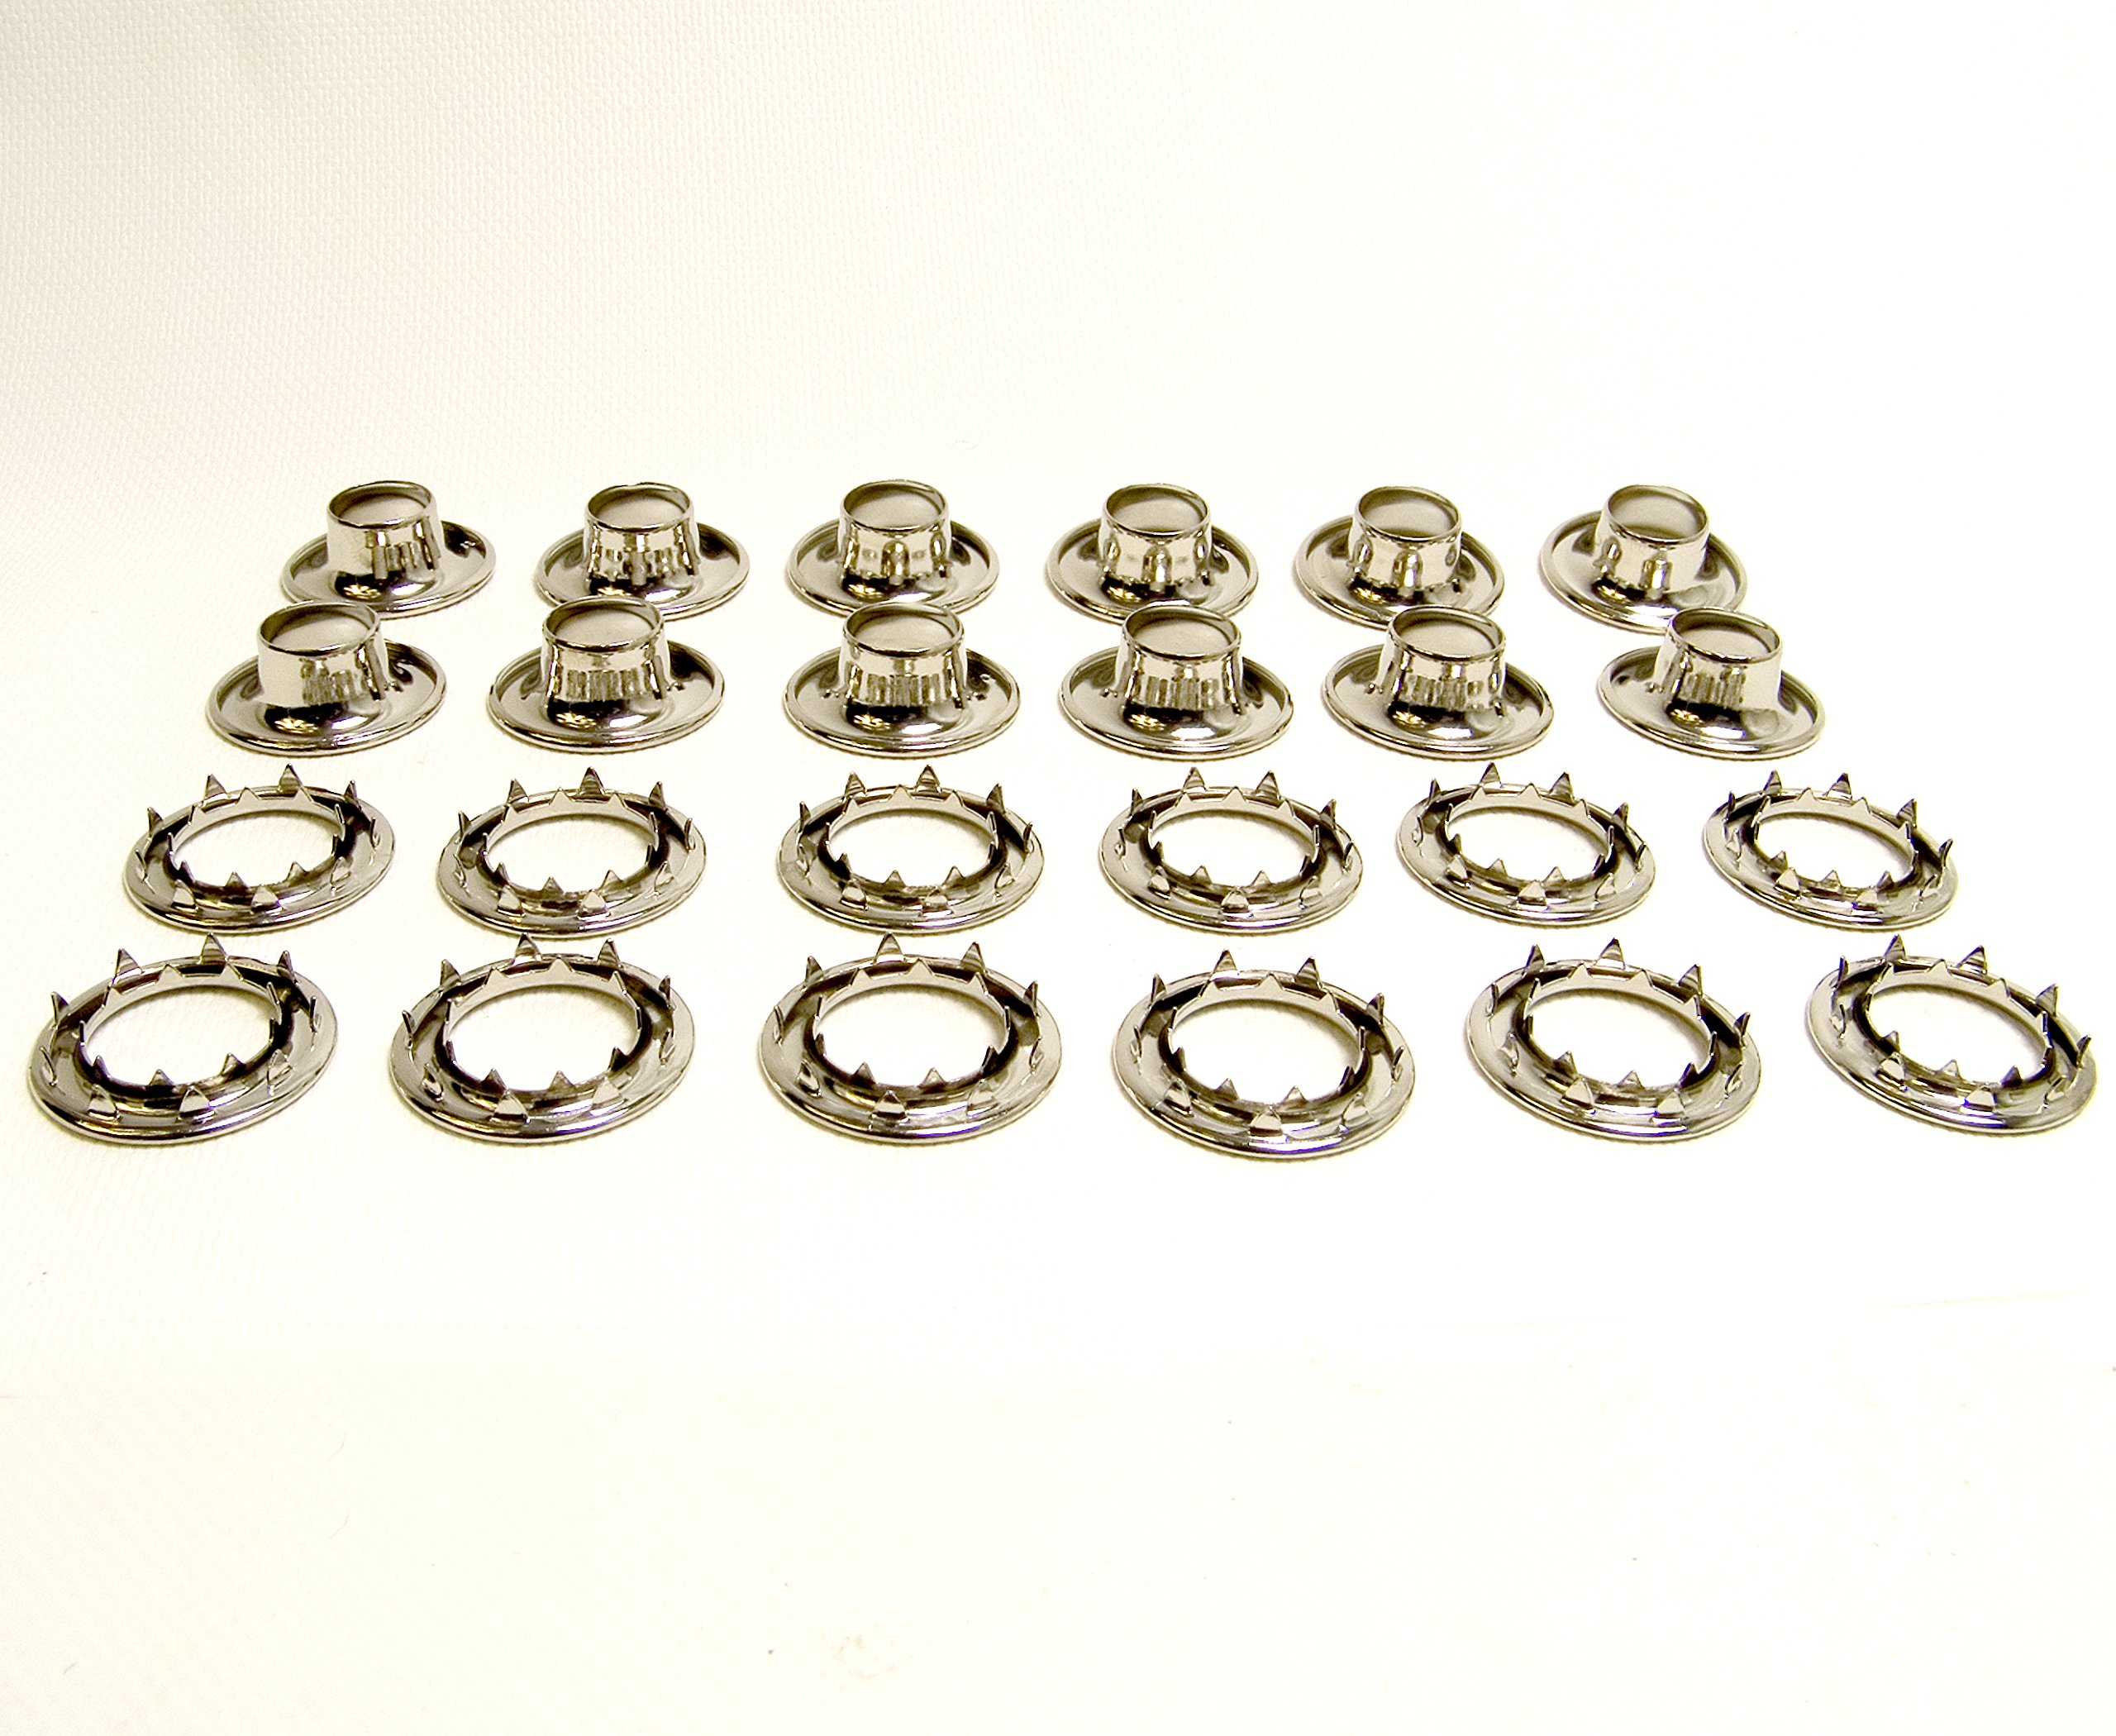 Grommets, #5 Nickle Plated Brass, Heavy Duty Rolled Rim Spur, 5/8'' Inch Hole, 12 Pc. Set - N.W. Tarp & Canvas by C.S. Osborne